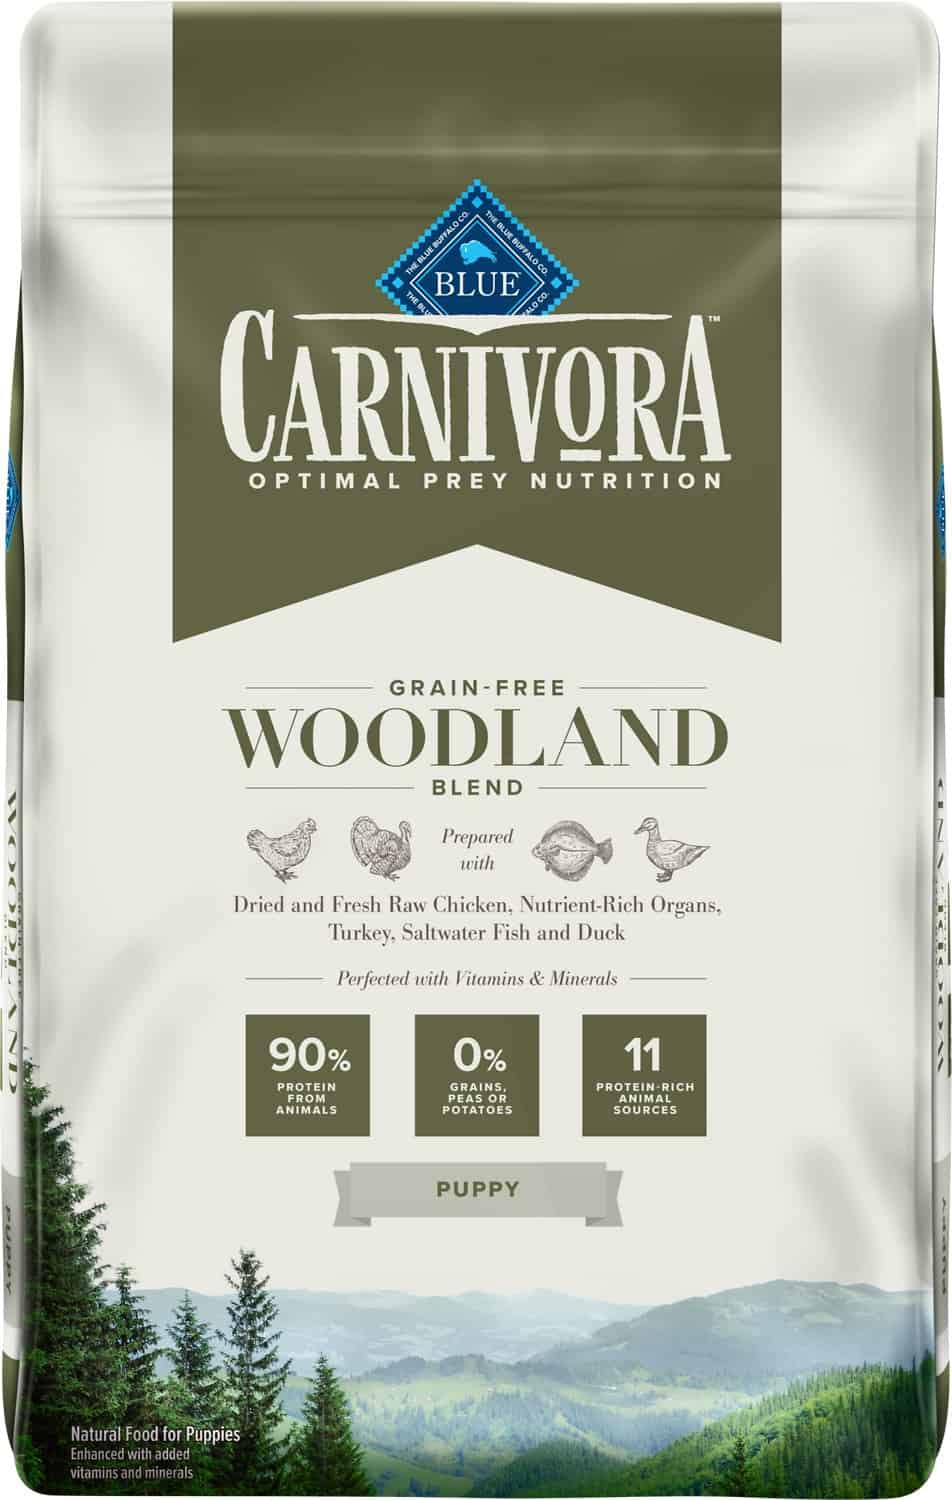 Blue Buffalo Carnivora Review 2021: The Pea & Potato Free Dog Food Line 18